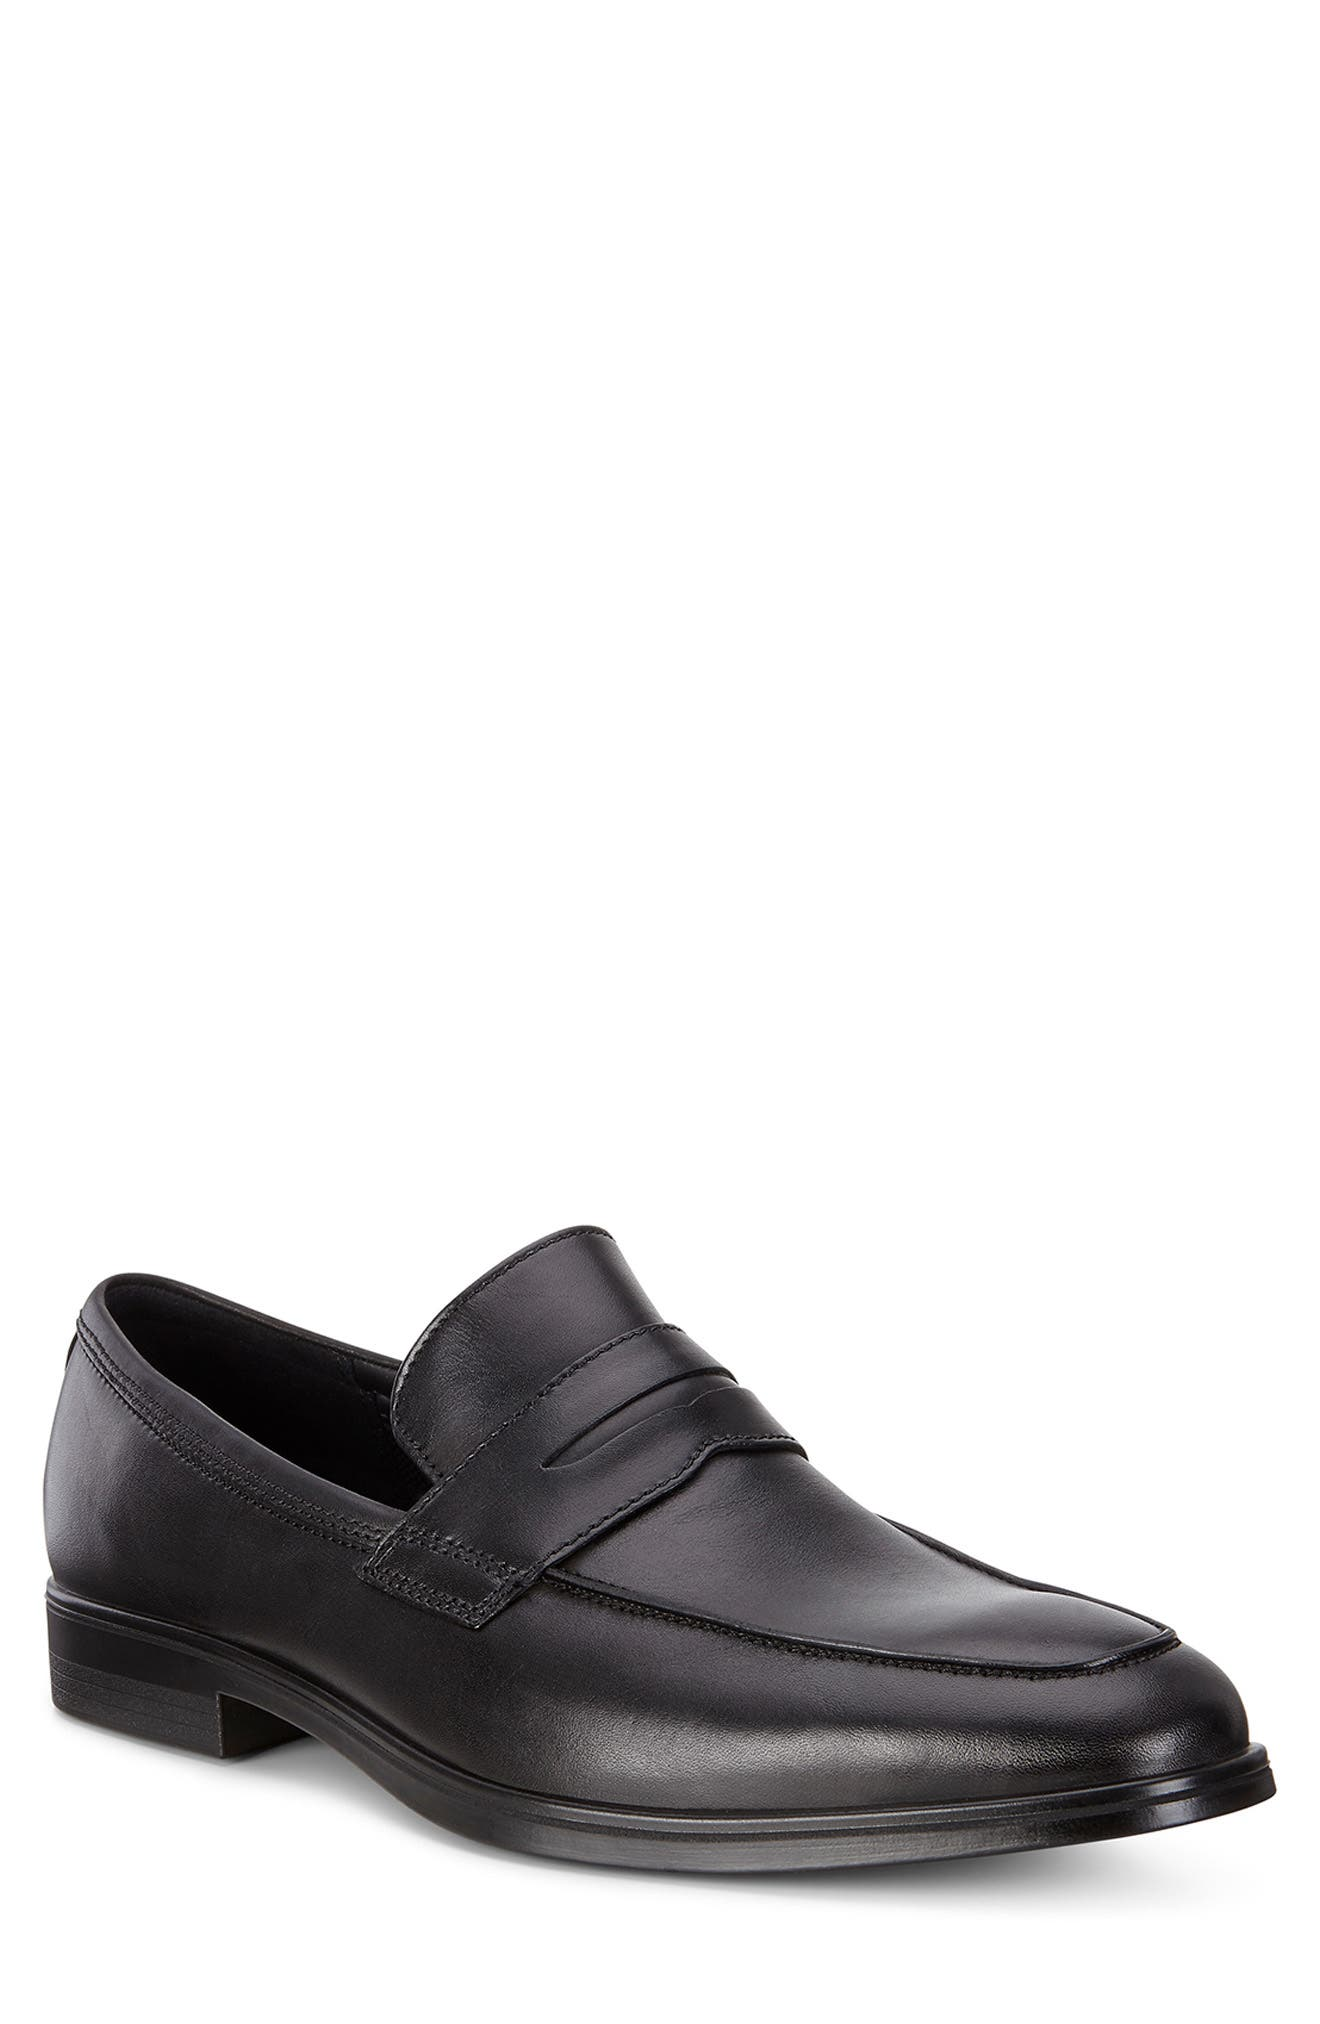 Melbourne Penny Loafer,                             Main thumbnail 1, color,                             BLACK LEATHER